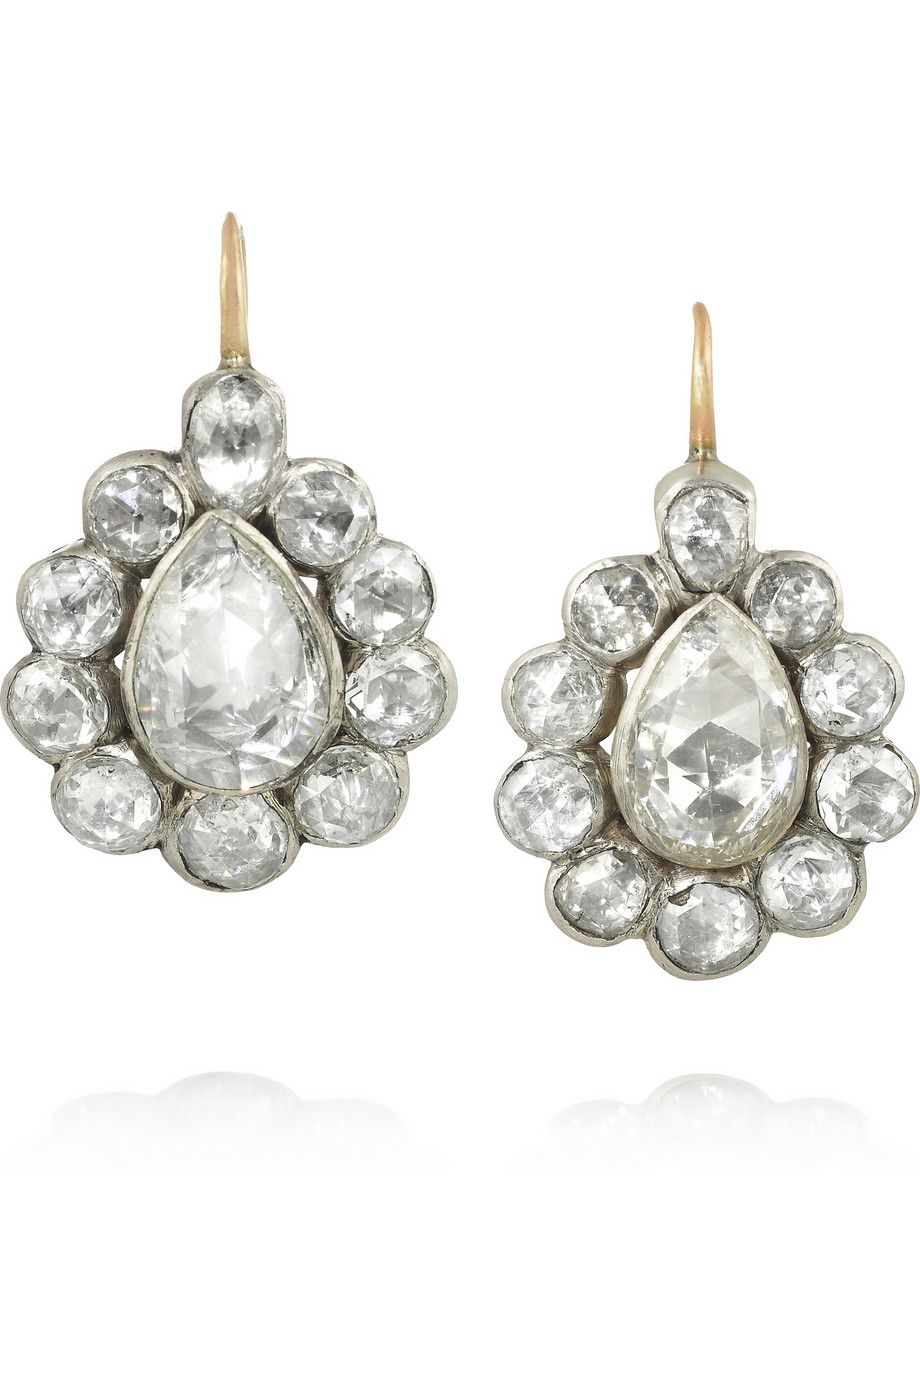 Olivia Collings 1900s 18-karat gold, silver and diamond earrings